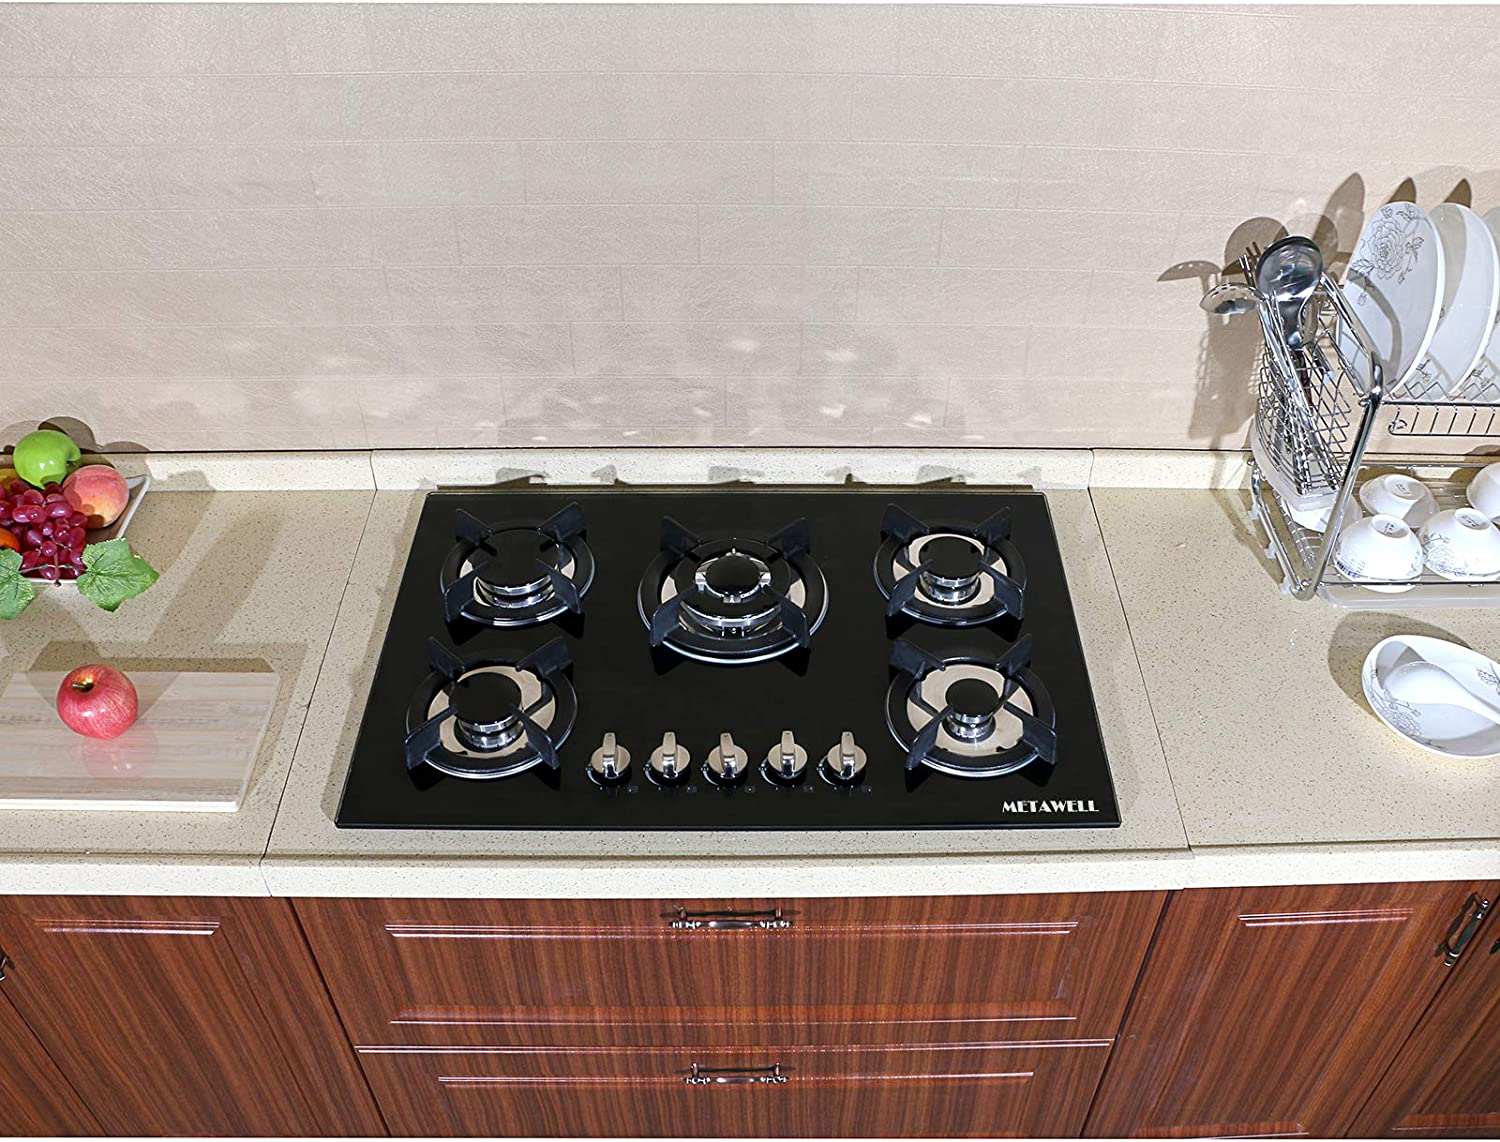 Ship from US ! METAWELL 30.3 Kitchen Tempered Glass 5 Burners Built-in NG//LPG Gas Cooktops